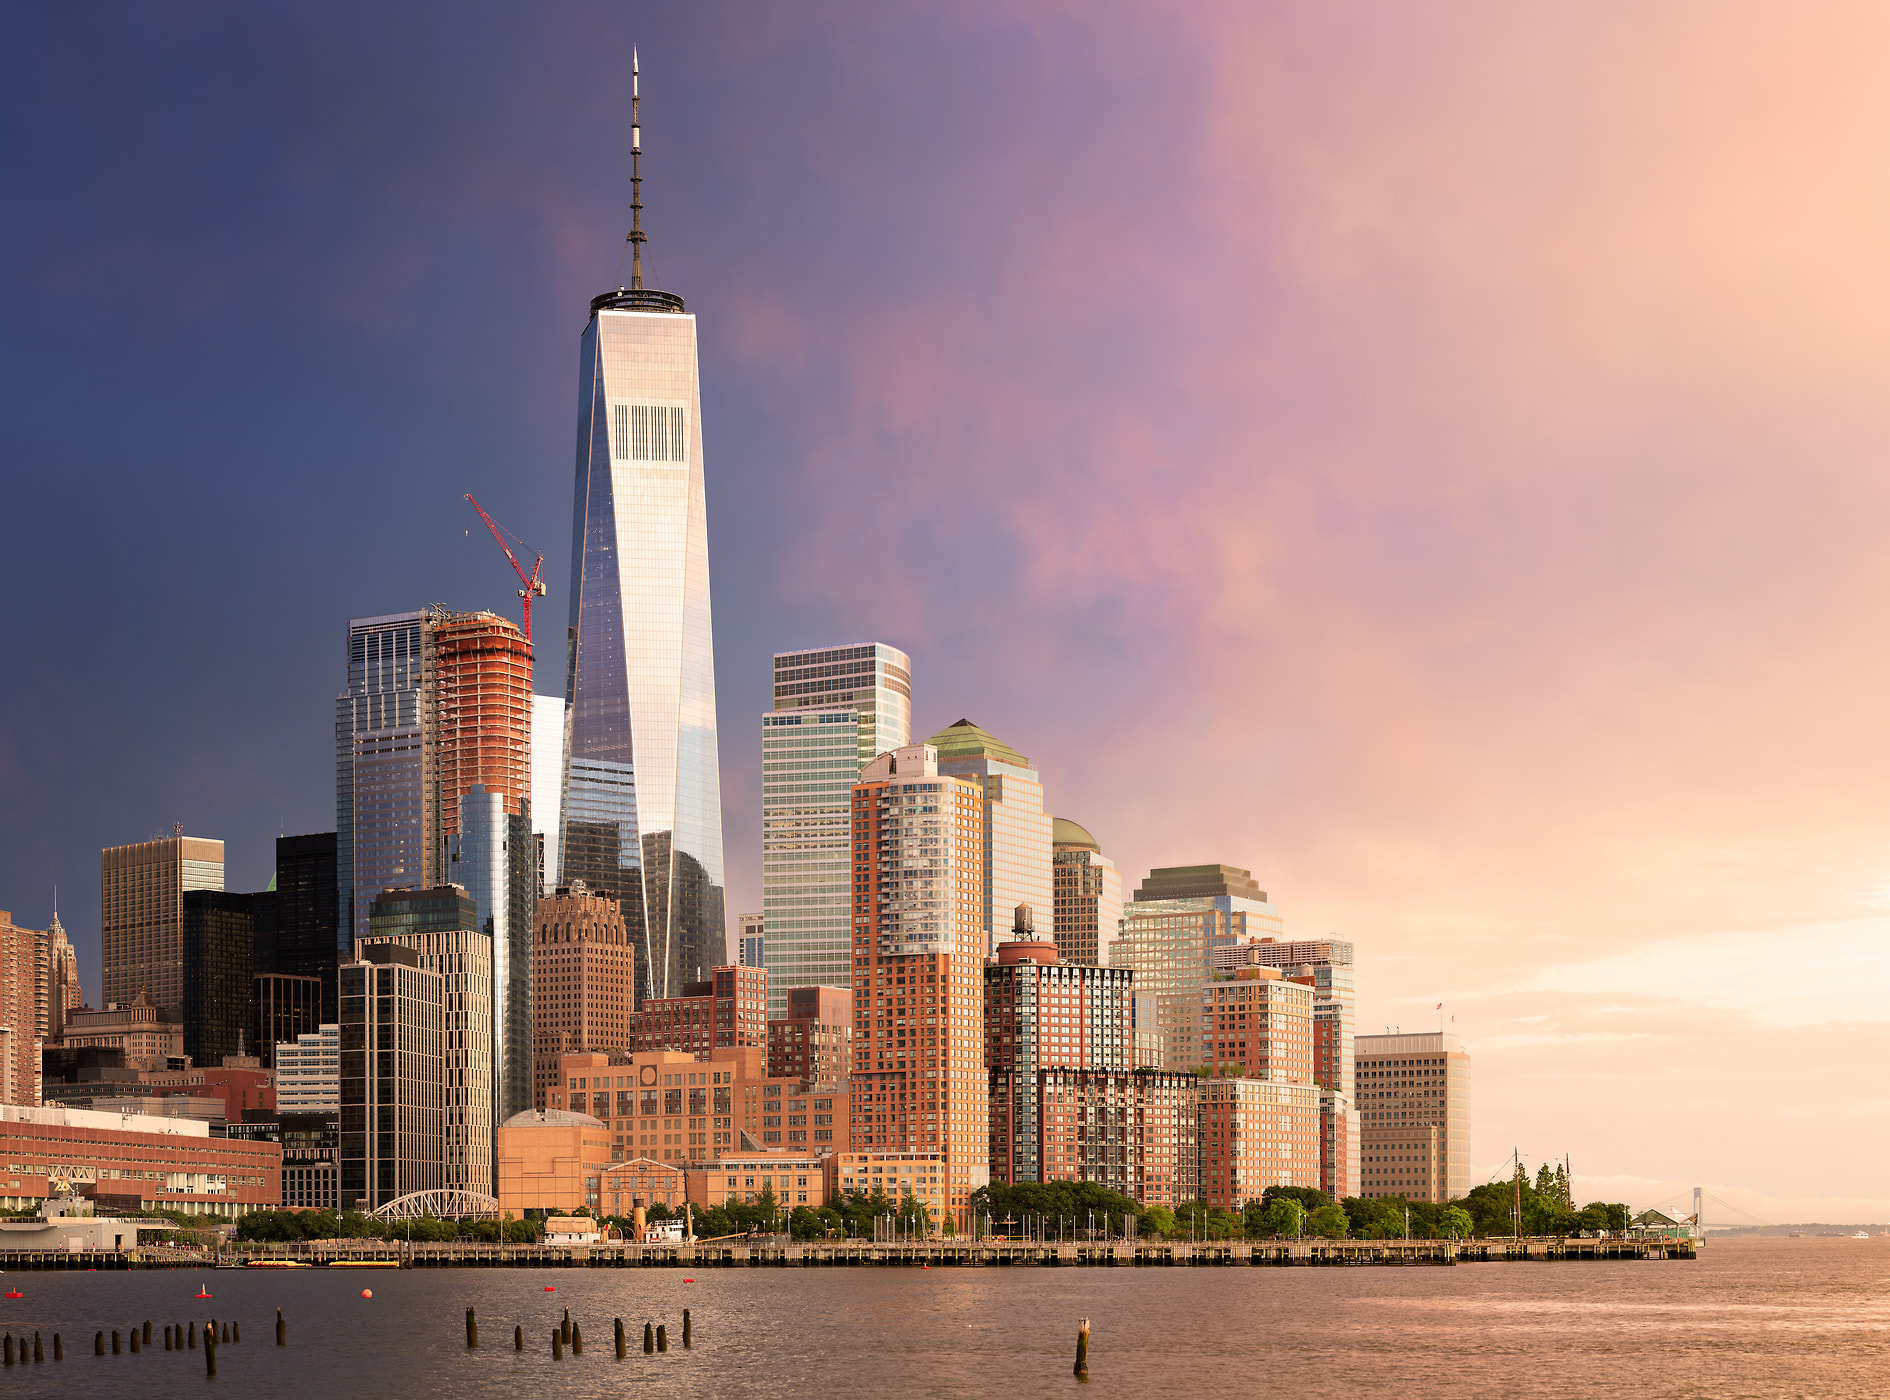 759 megapixels! A very high resolution, large-format VAST photo of the World Trade Center and Battery Park City at sunset; fine art skyline photo created by cityscape photographer Dan Piech in New York City